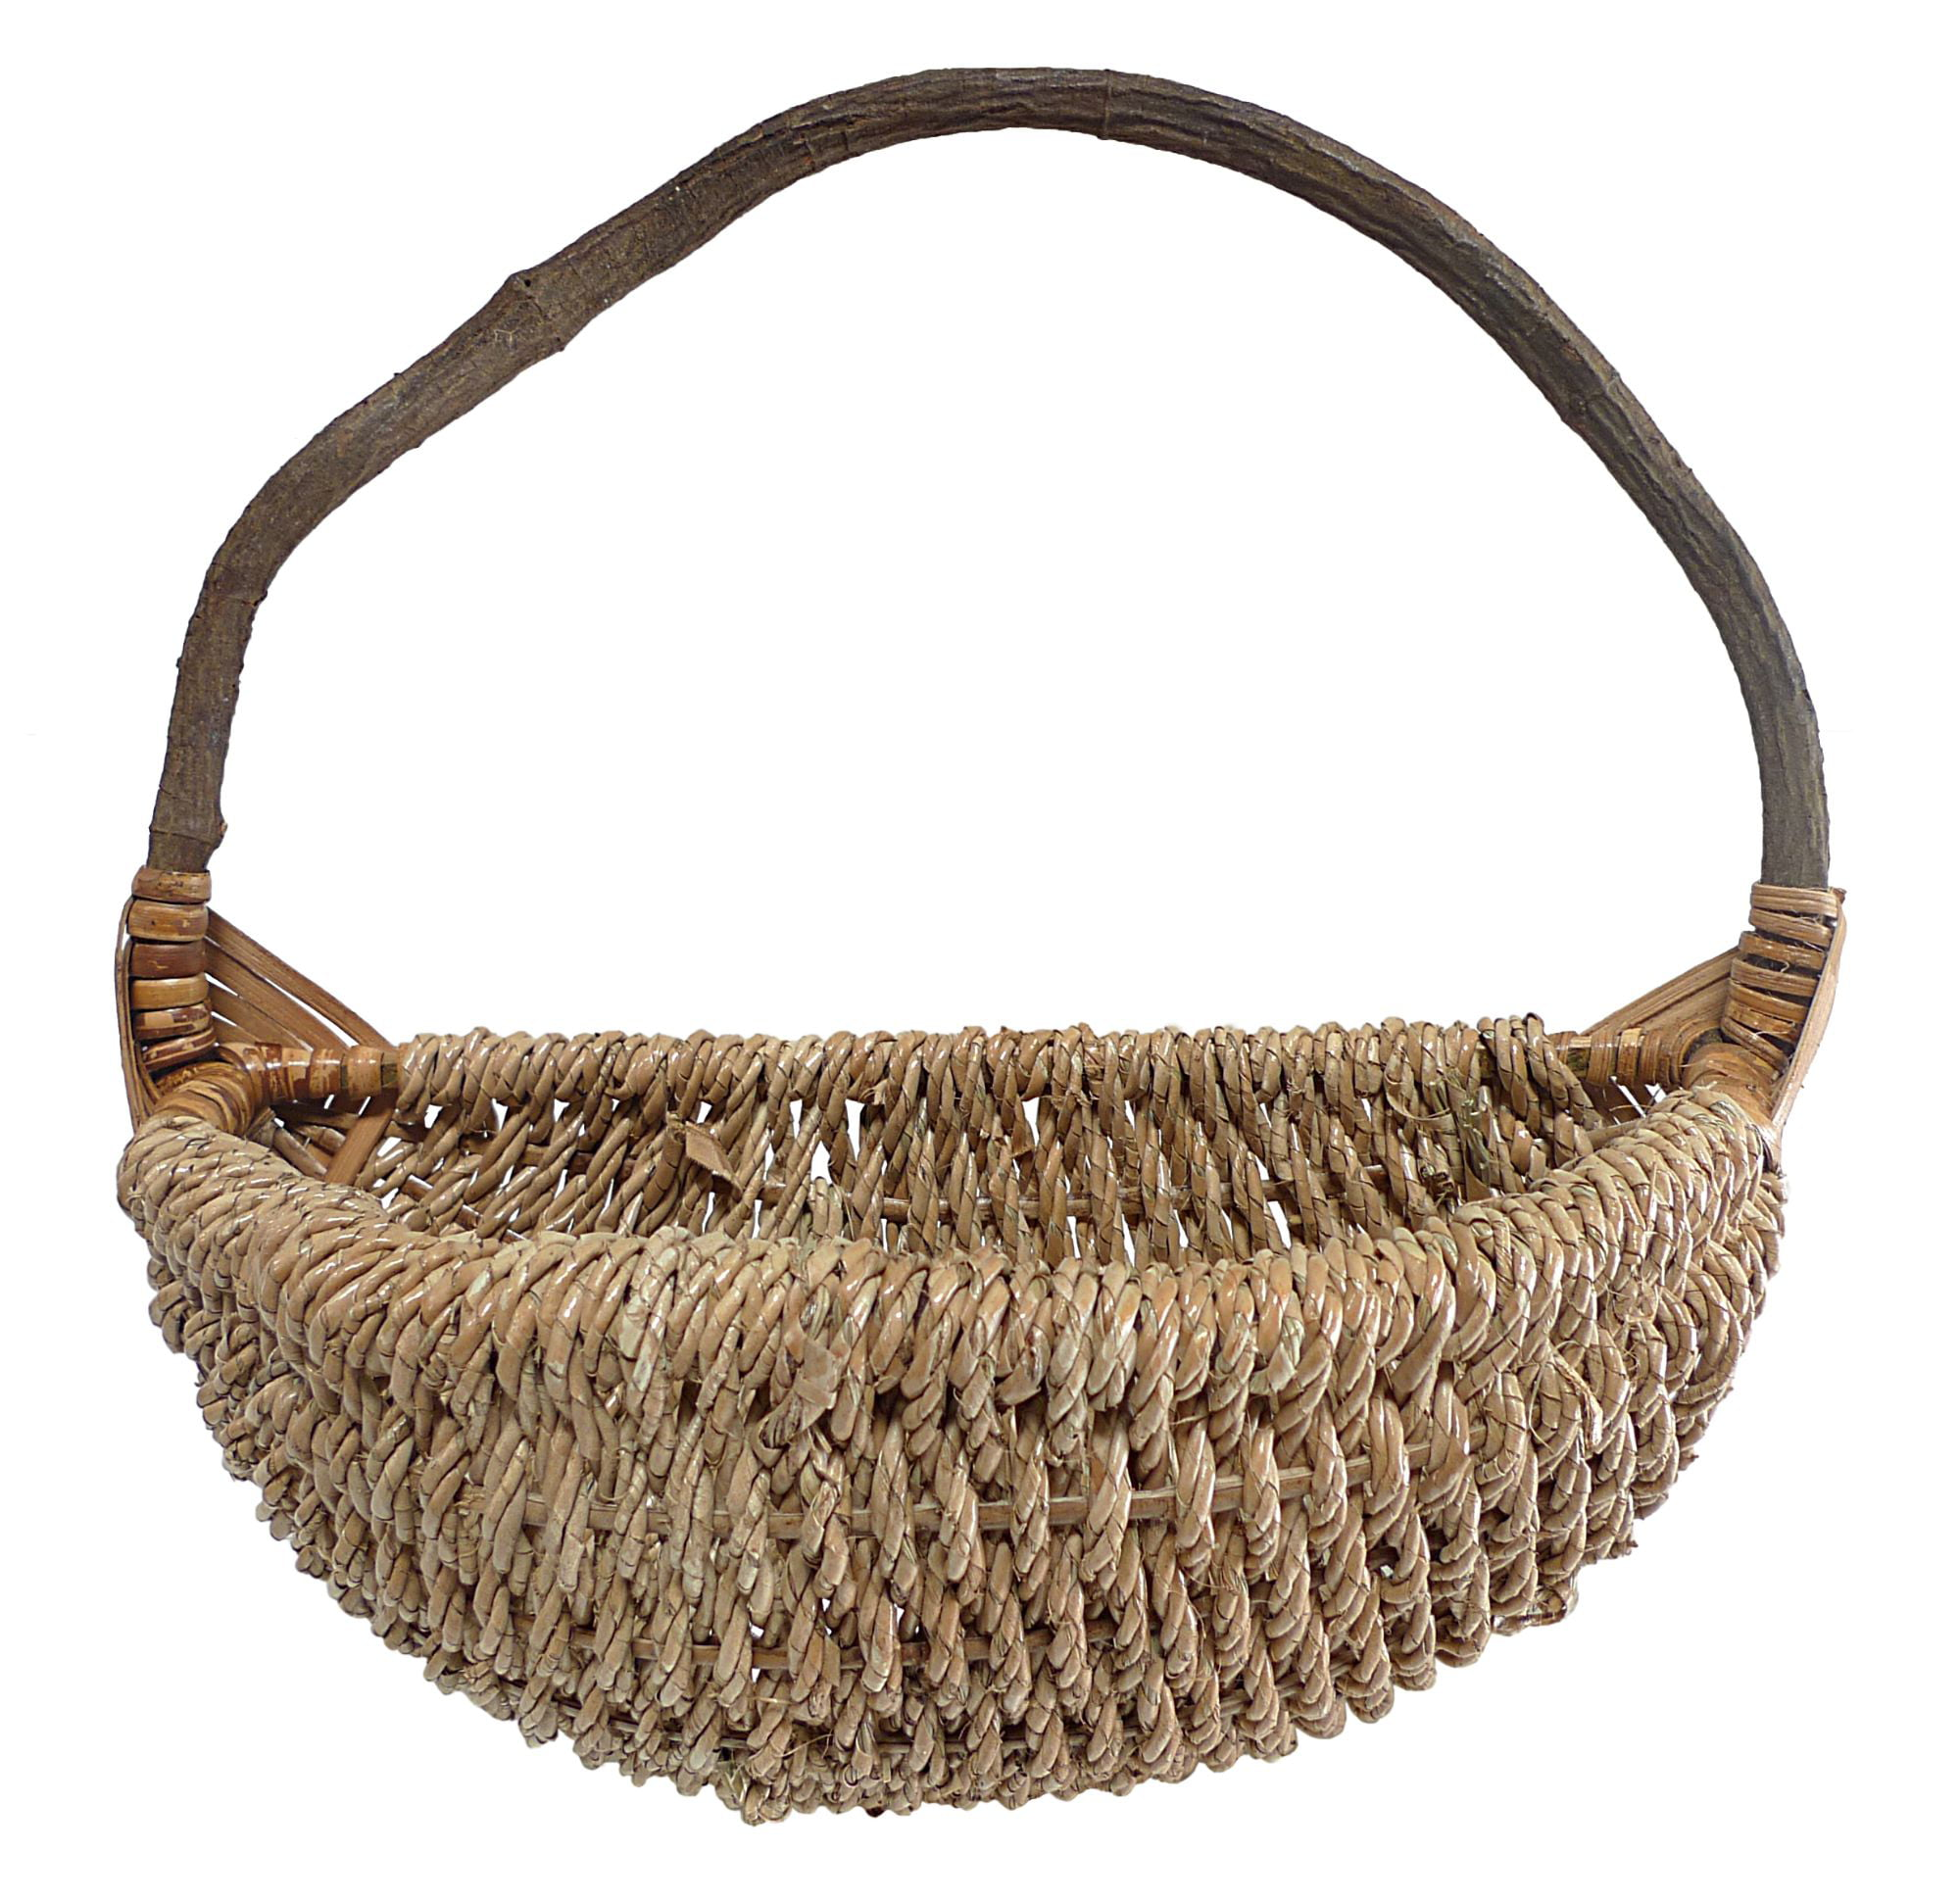 18 Brown Rope Hanging Large Wall Basket With Rear Handle Walmart Com Walmart Com